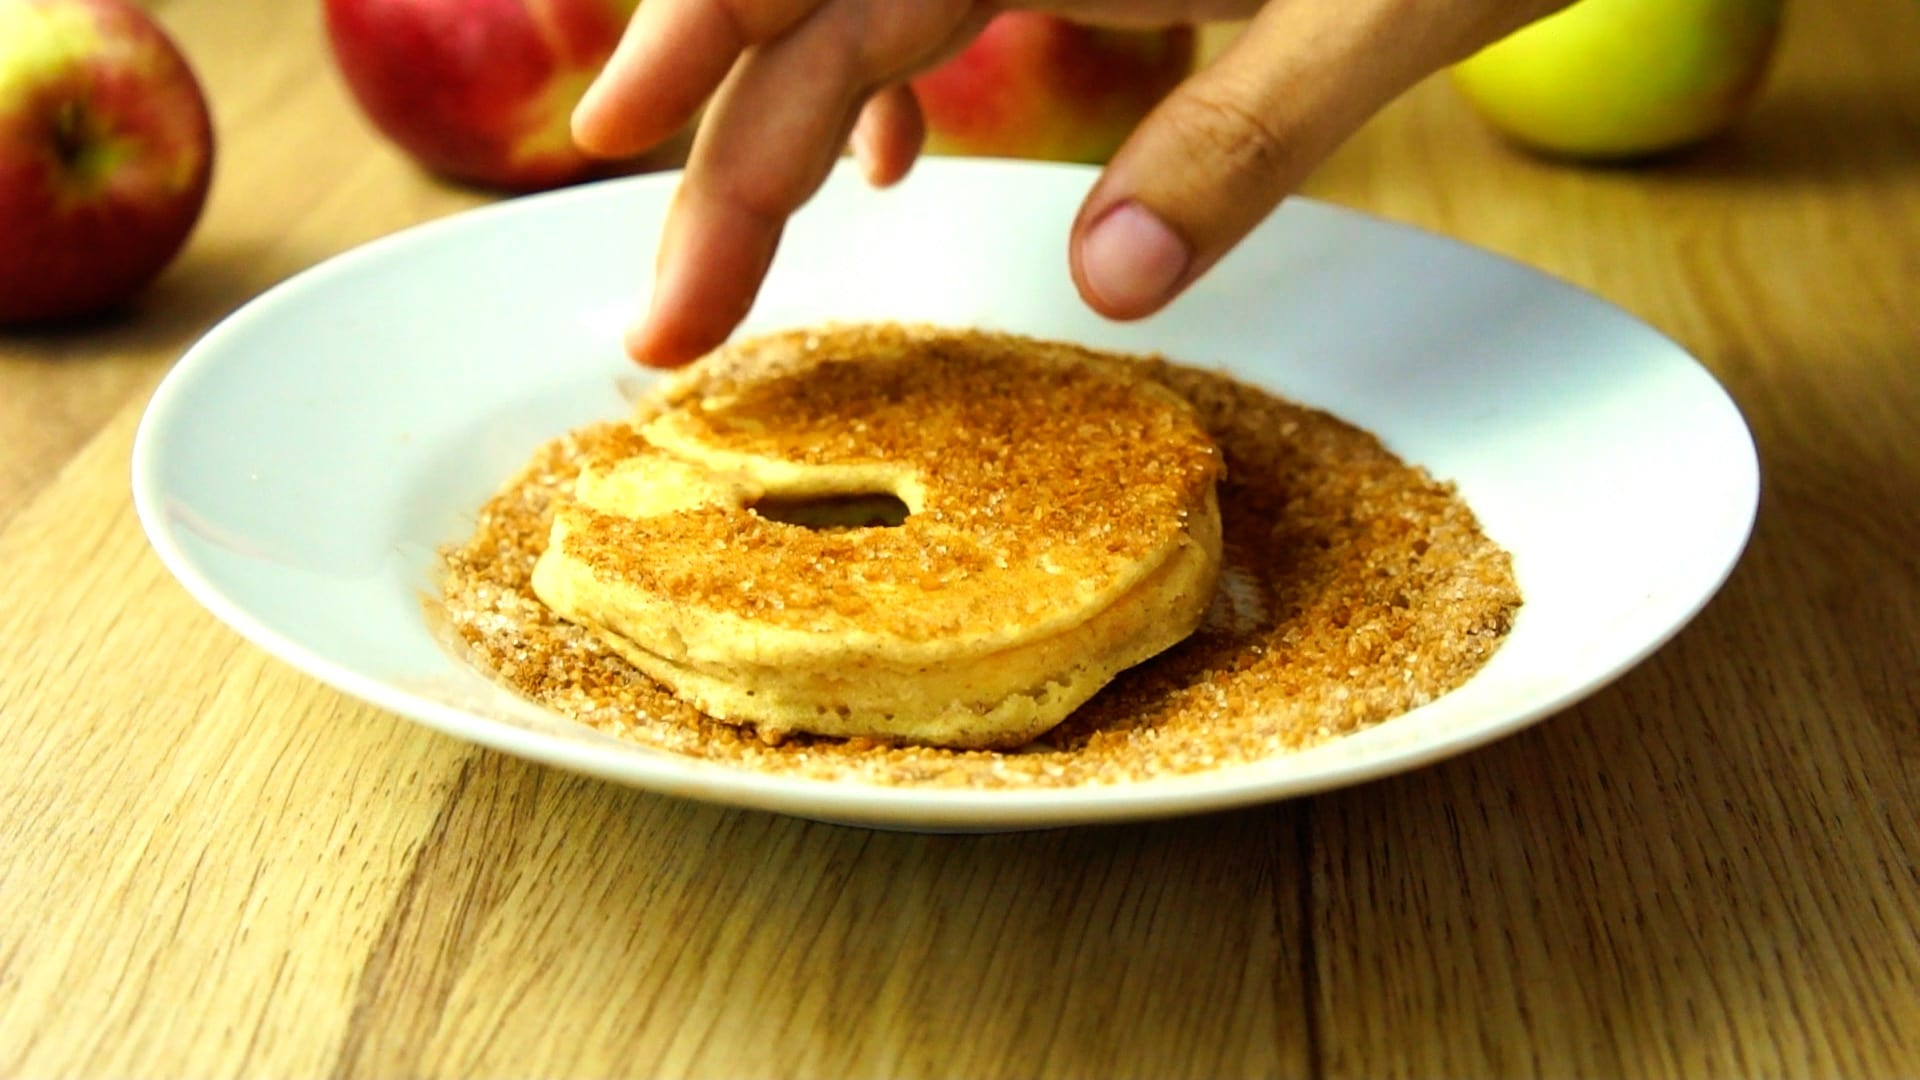 White plate sprinkled with cinnamon sugar and a fried apple ring is coated using a hand.